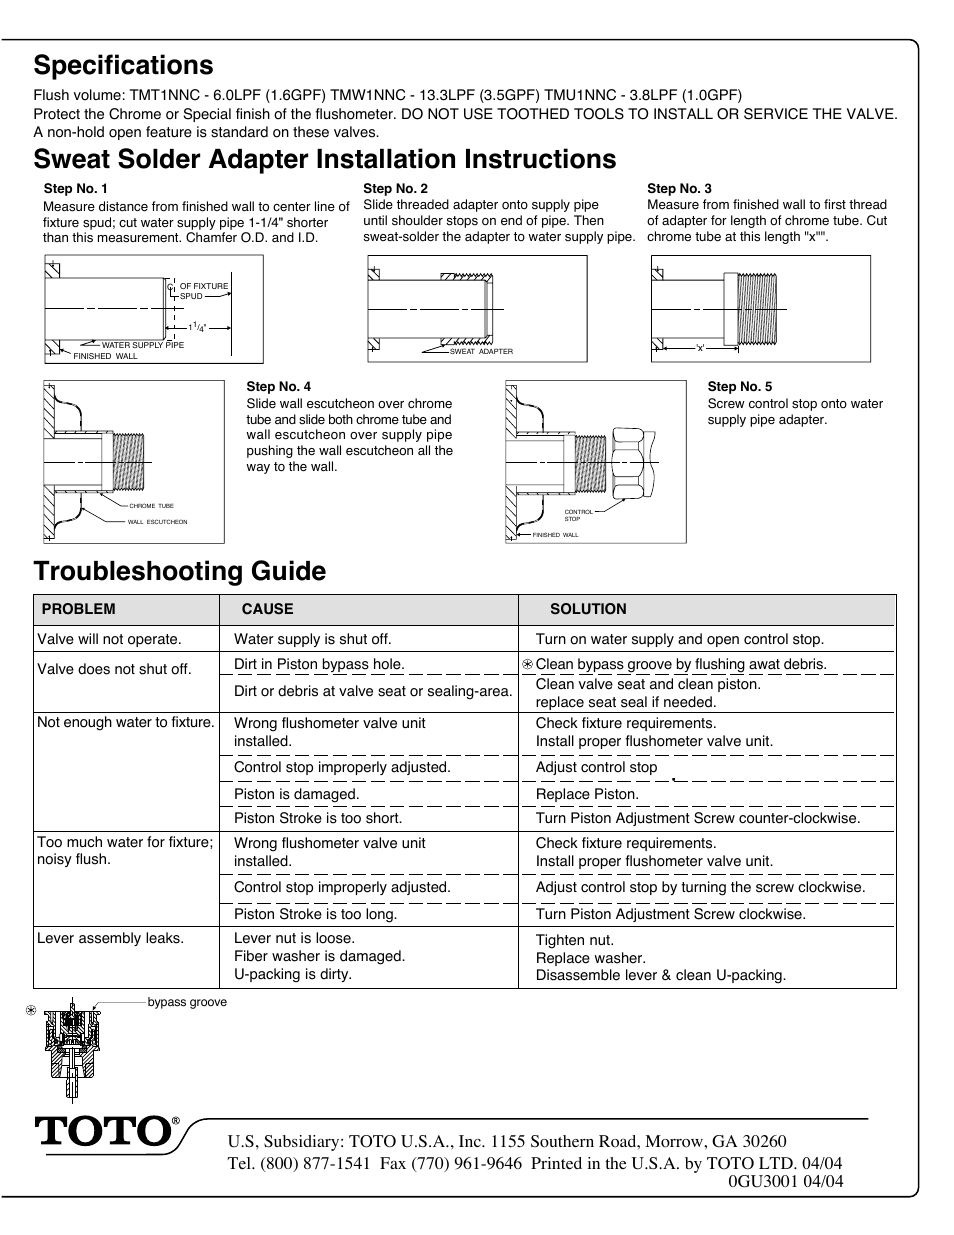 Specifications, Sweat solder adapter installation instructions ...